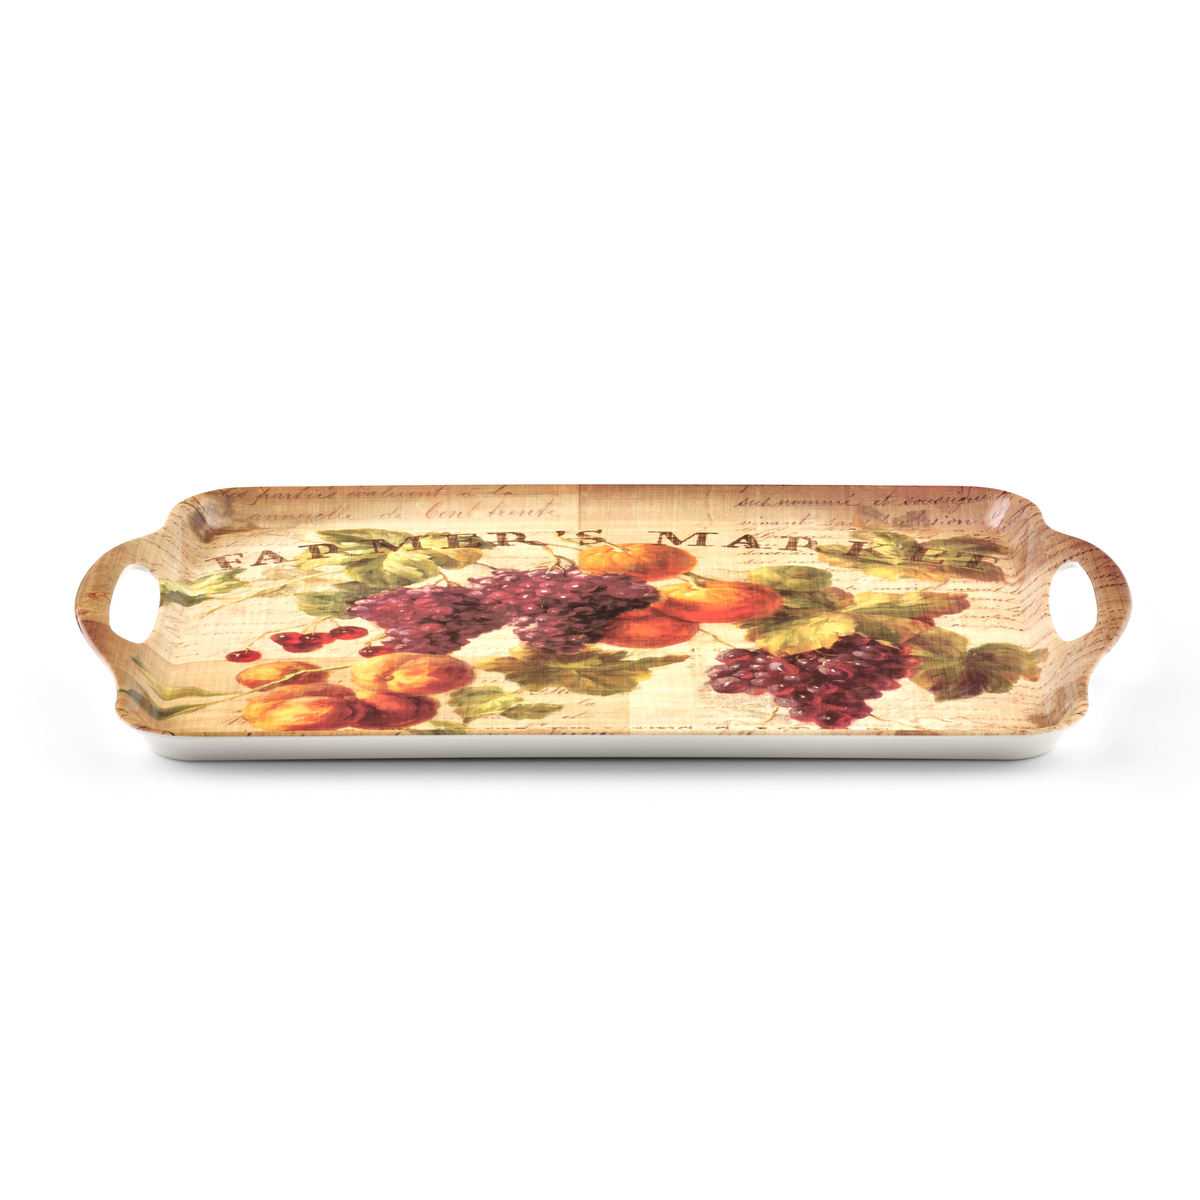 Pimpernel Abundant Fall Large Melamine Handled Tray image number 2